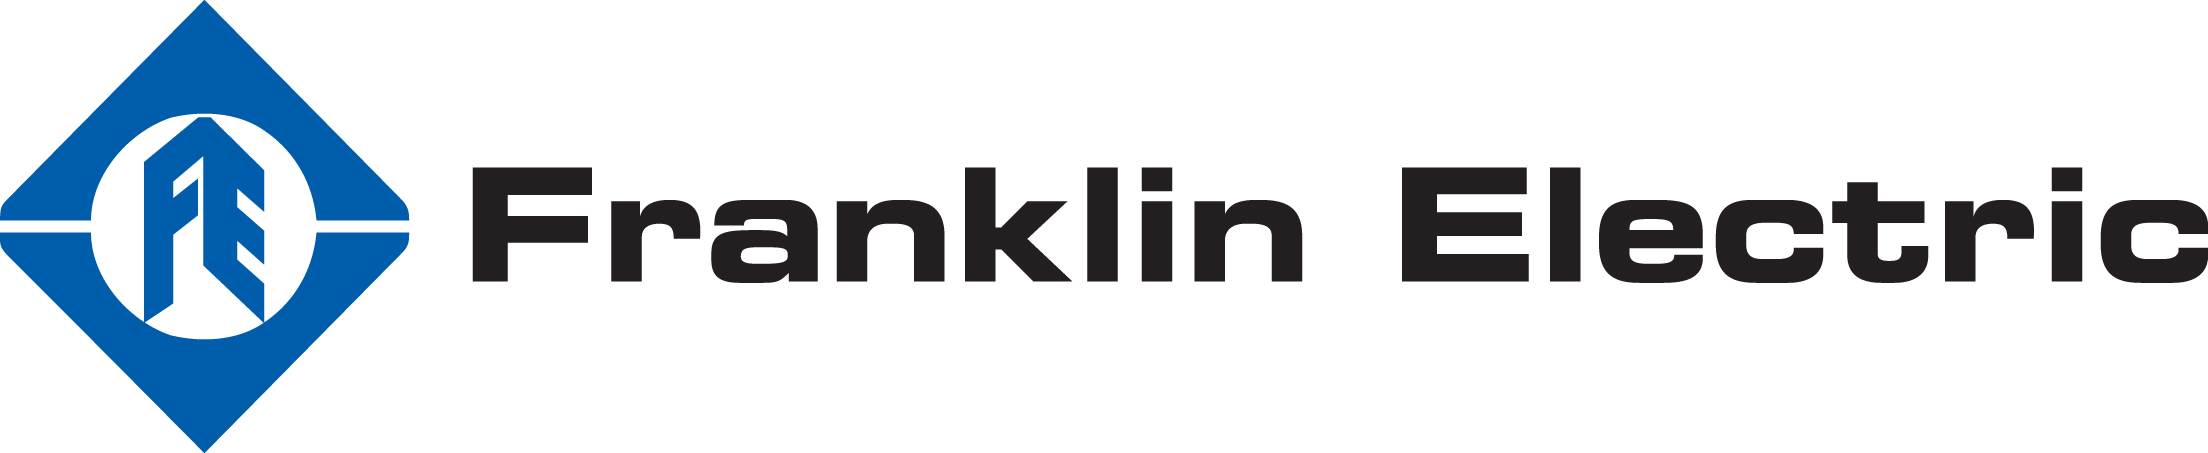 Franklin Electric Declares Payment of Increased Quarterly Cash Dividend